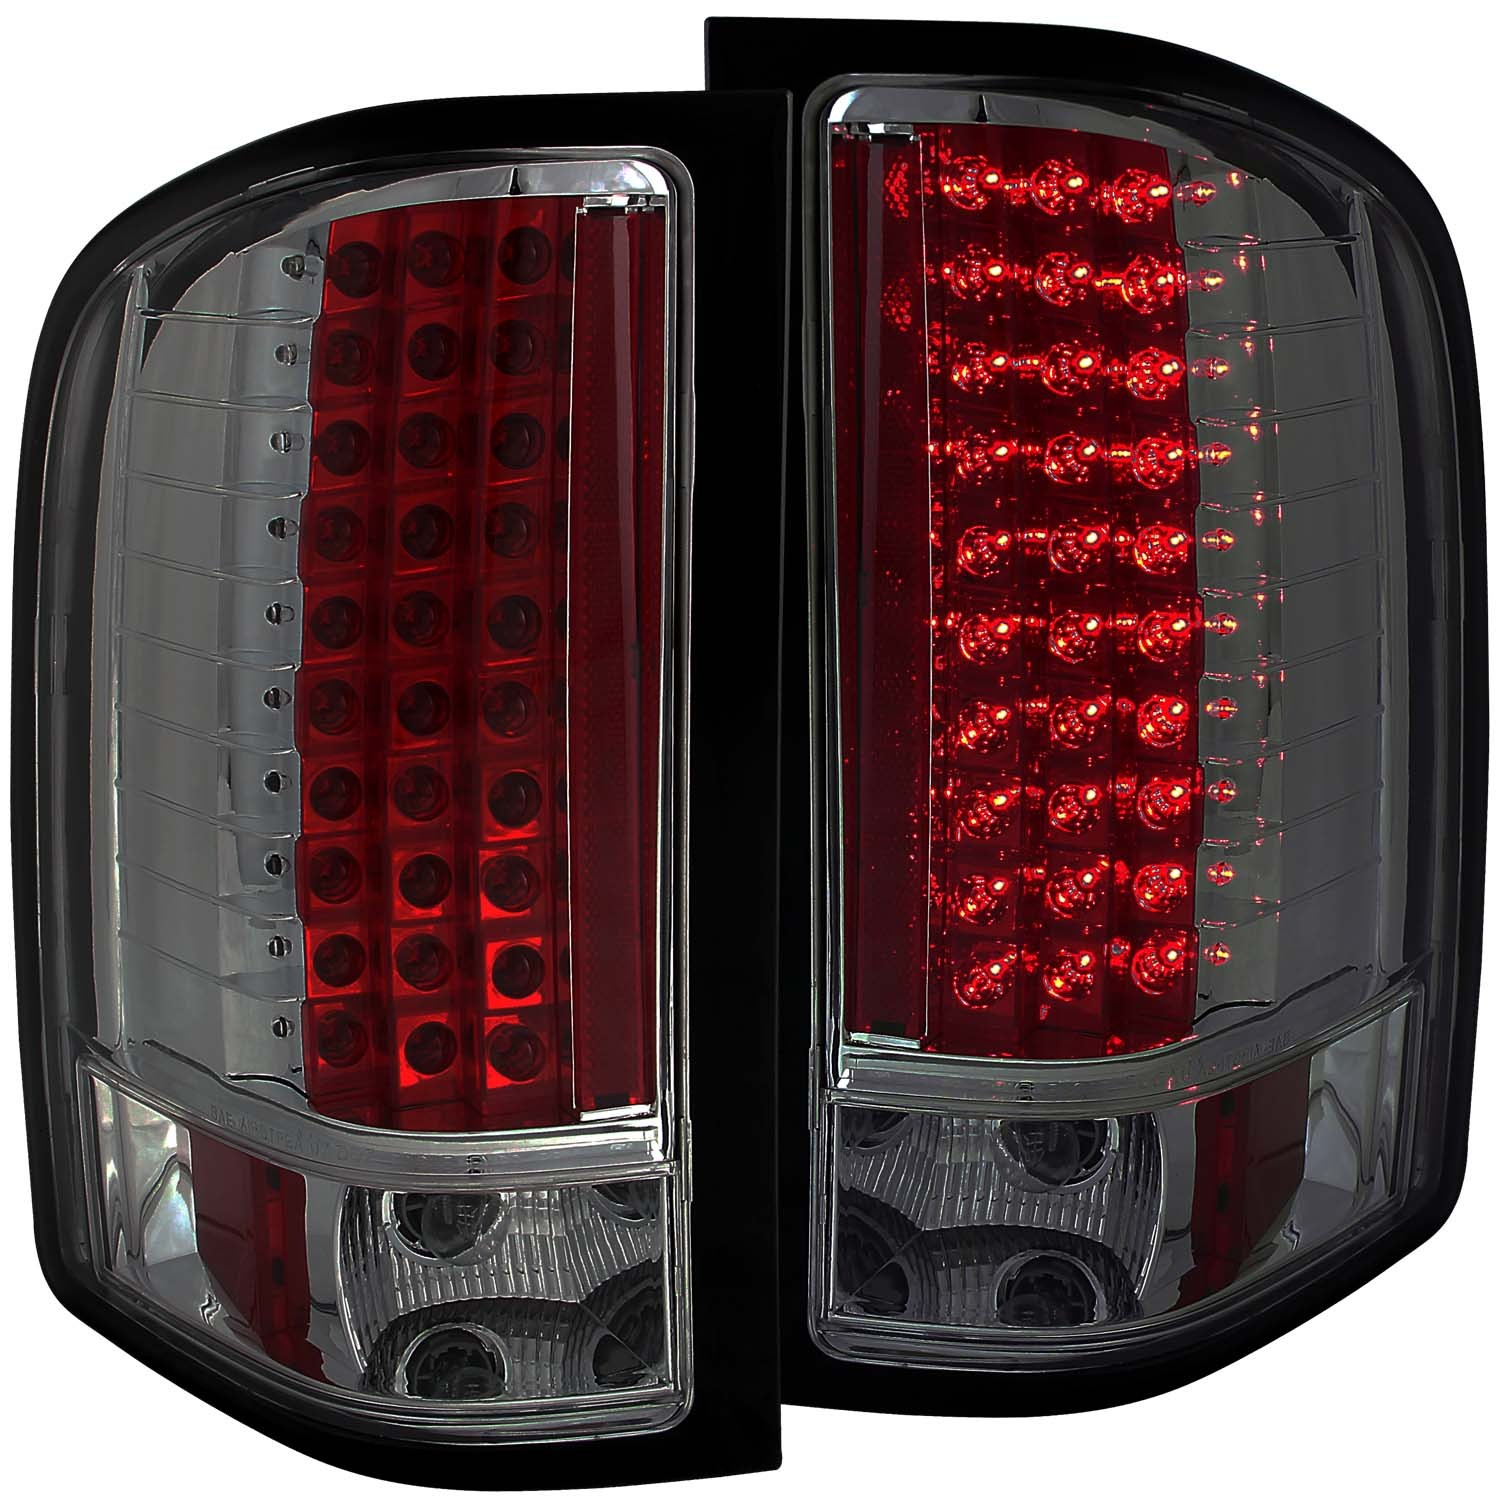 ford explorer tail light wiring diagram image details. Black Bedroom Furniture Sets. Home Design Ideas